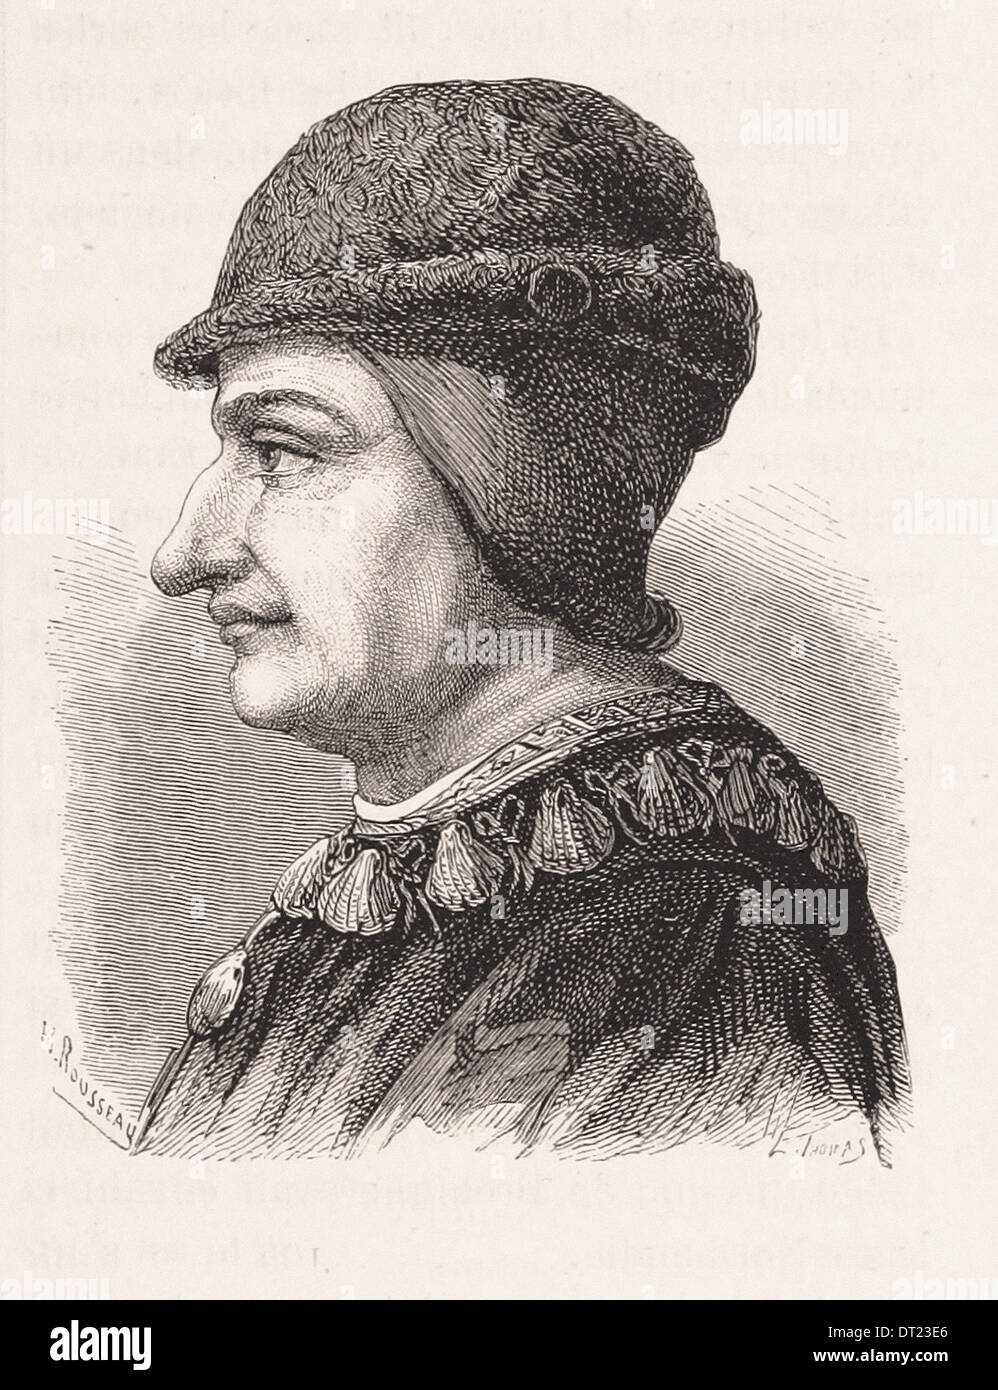 Portrait of Louis XI King of France - French engraving XIX th century - Stock Image